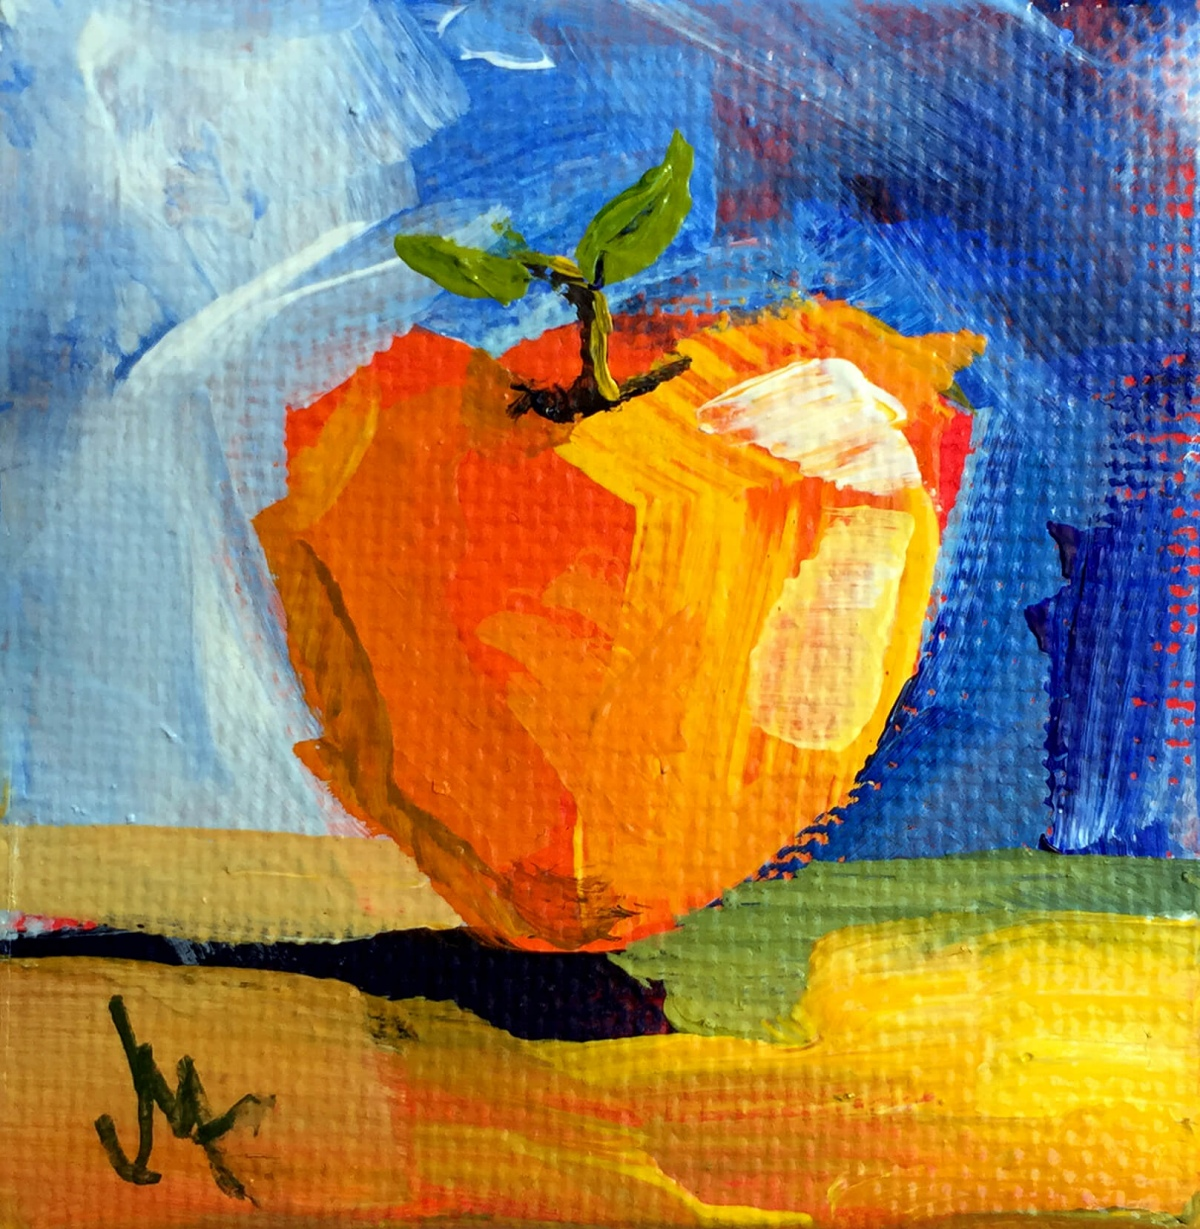 Apple Anyone - Painting by JanettMarie